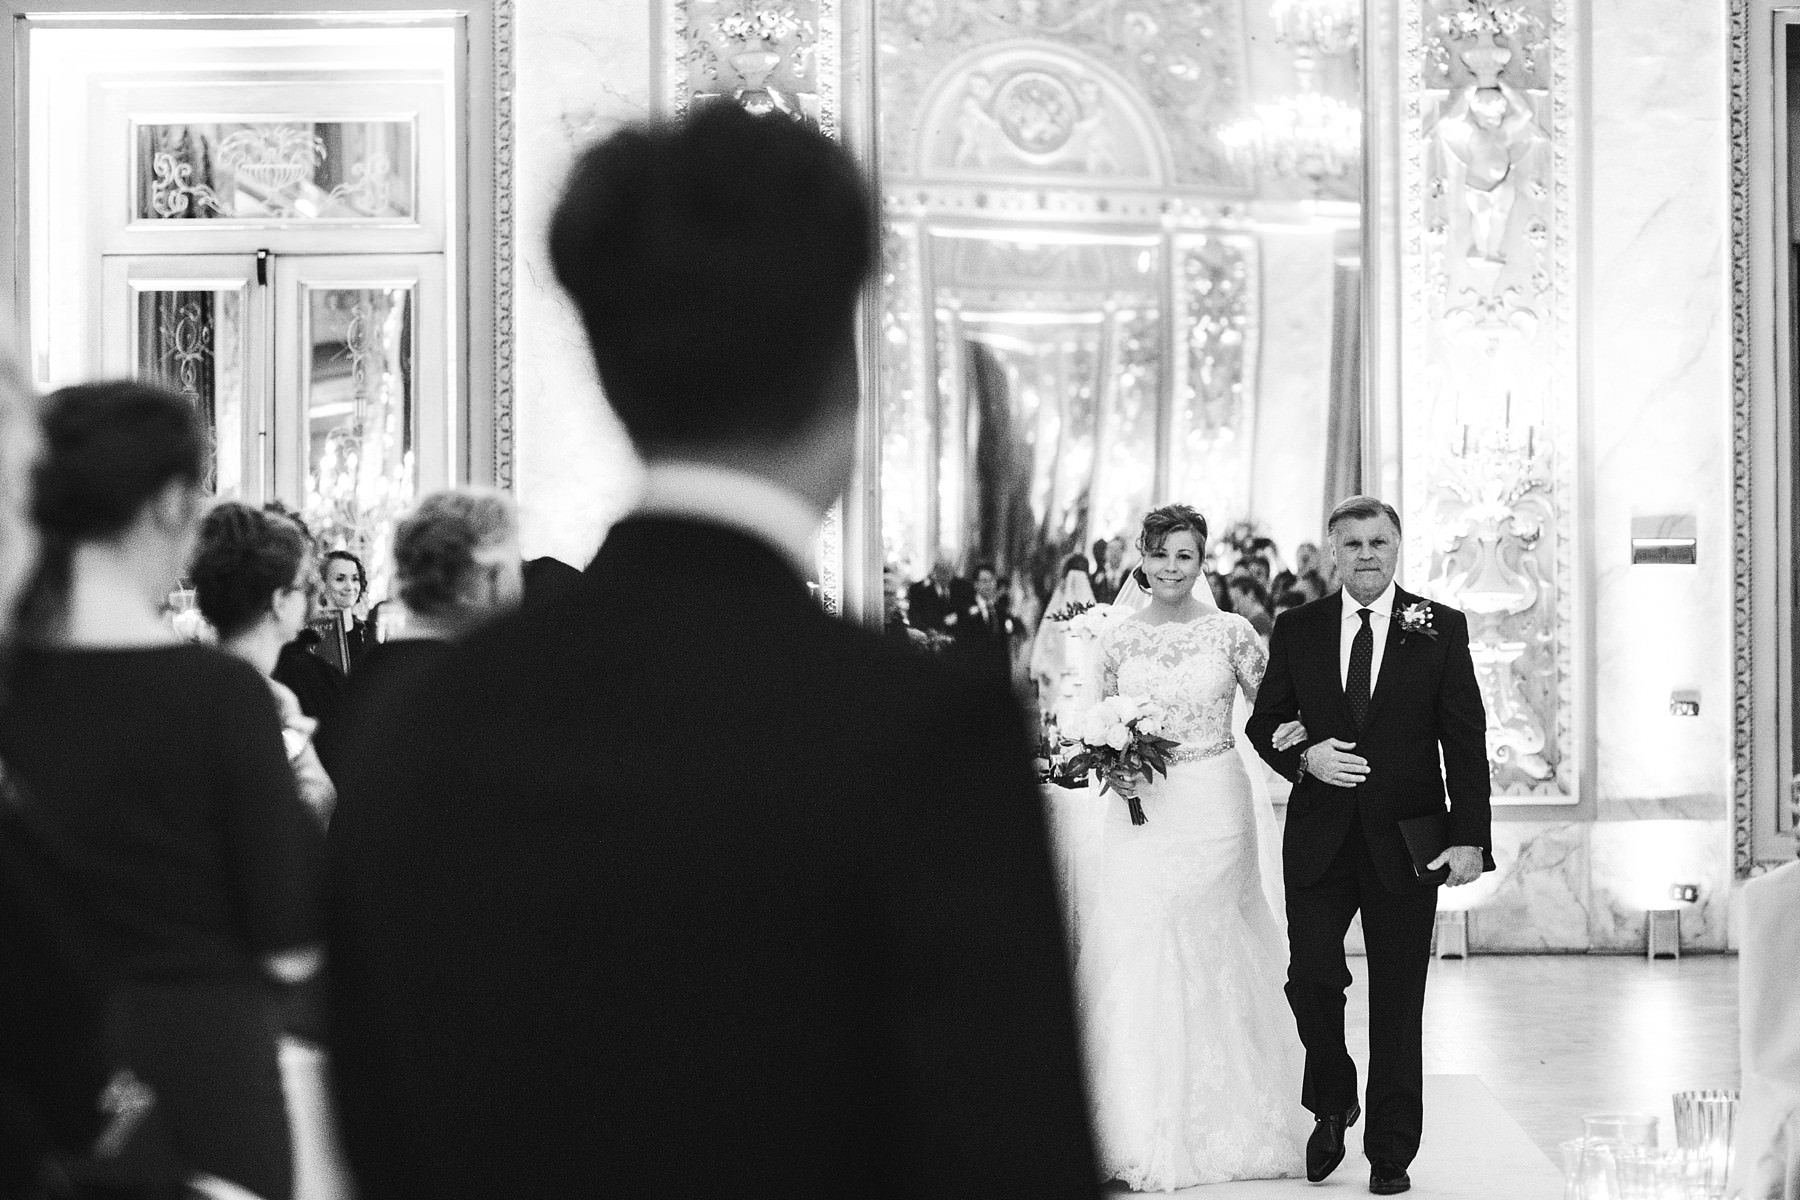 Bride and groom see each other for the first time. Luxury intimate destination wedding in Florence at St. Regis Florence